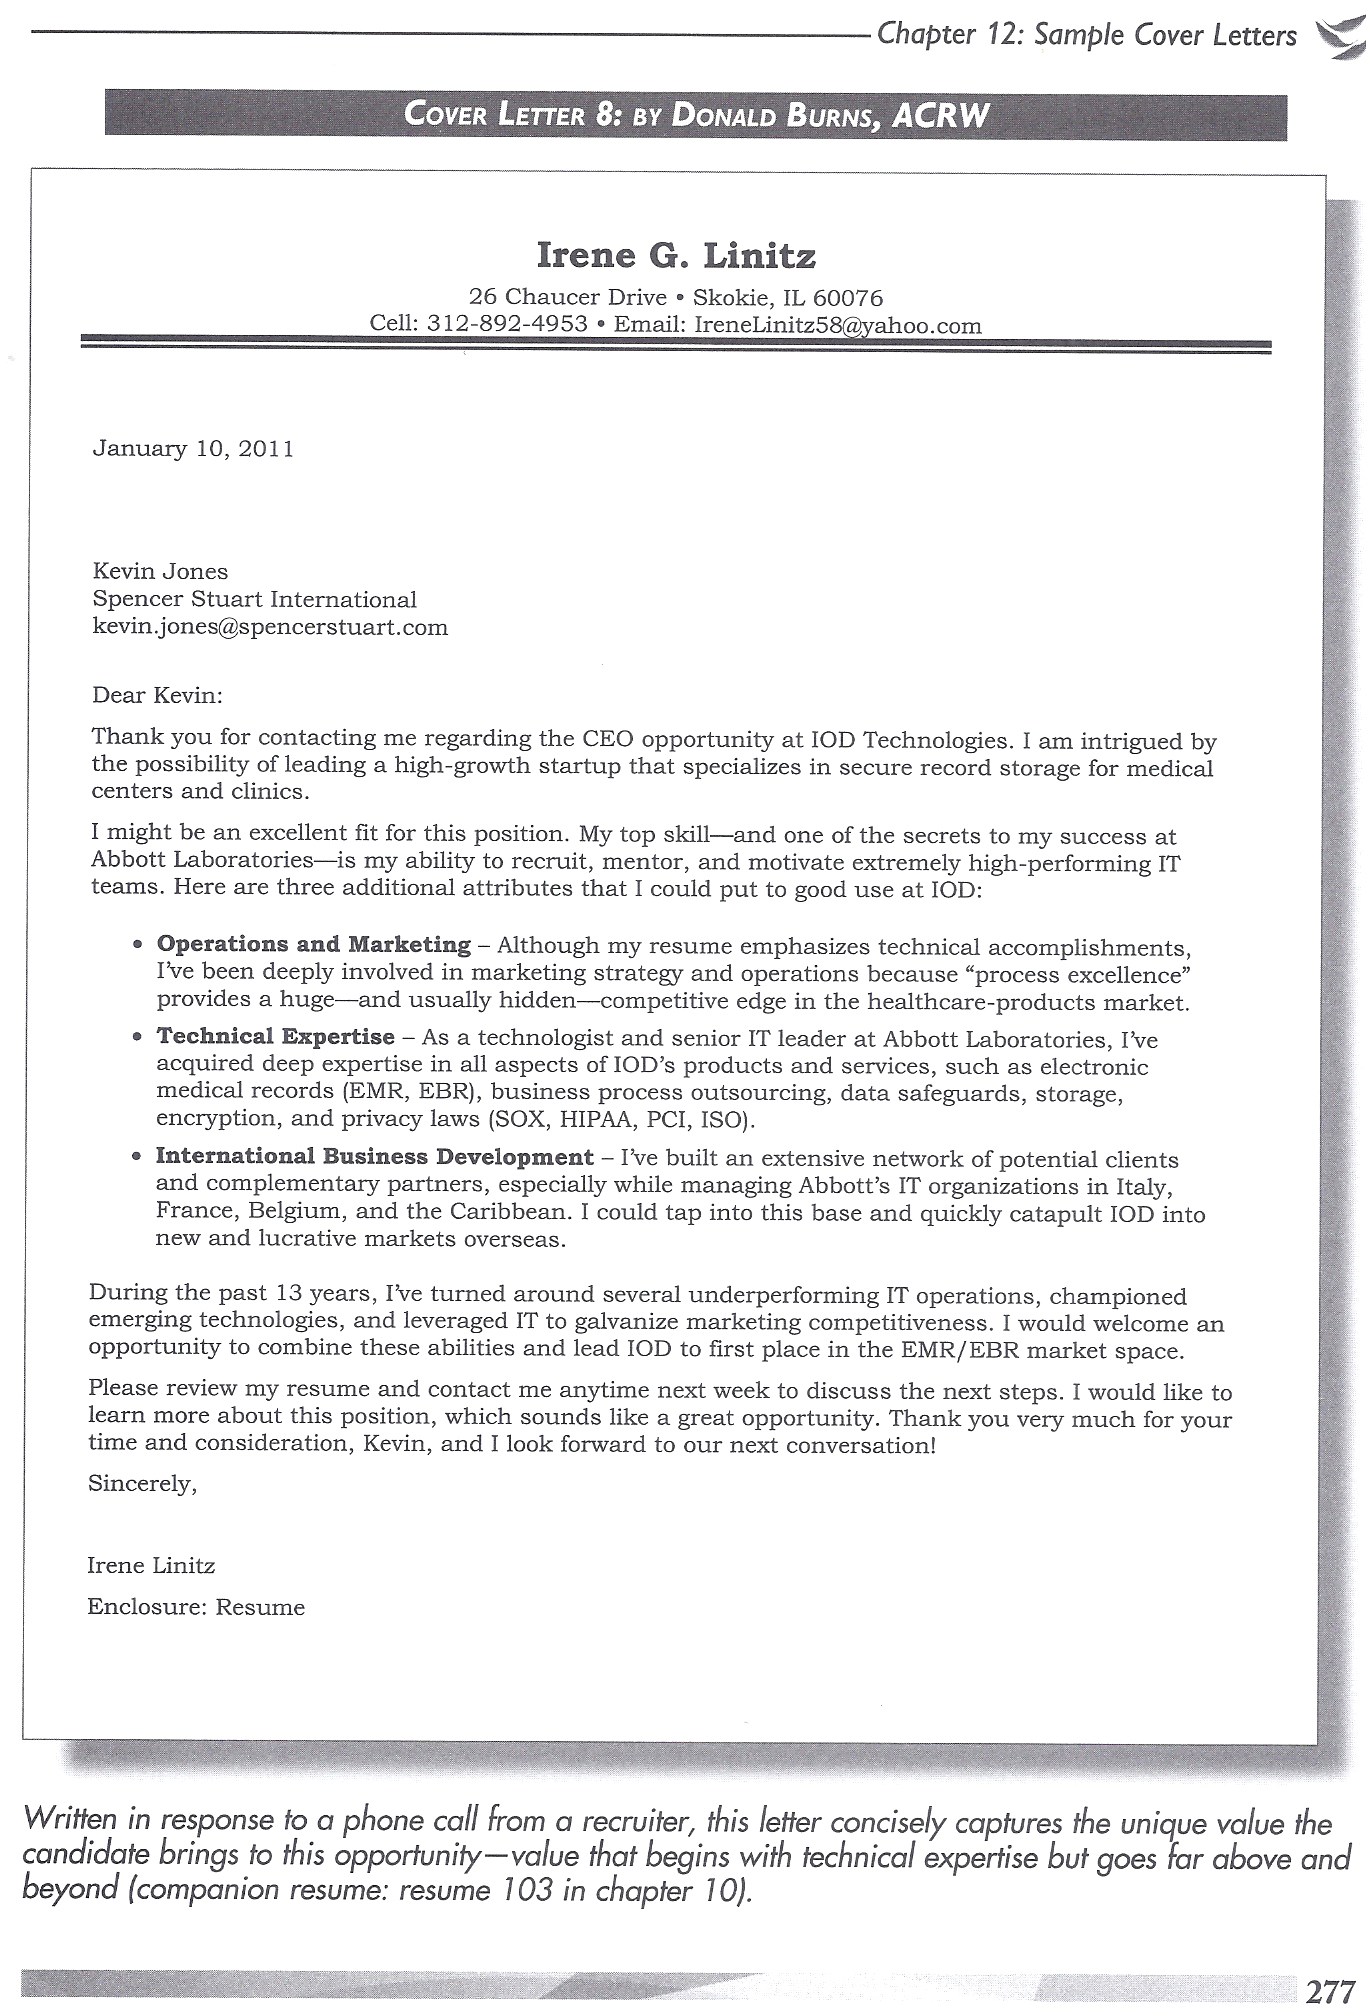 engineering resume cover letter coverletter - Resume And Cover Letters